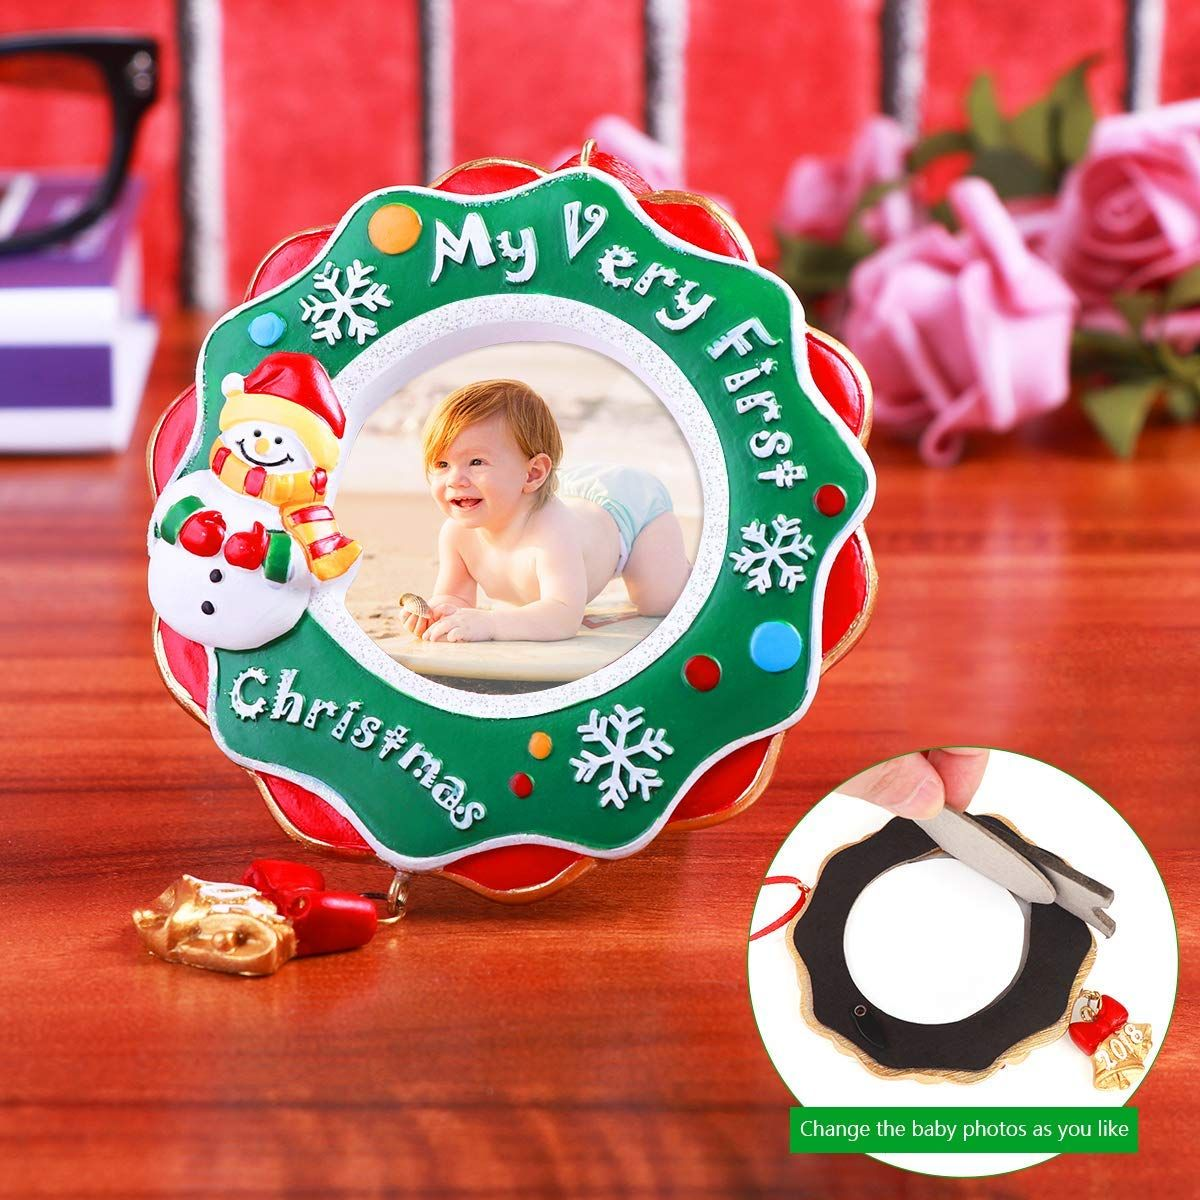 Amazon Com Unomor 2018 My Very First Christmas Ornament Baby S First Picture F Baby First Christmas Ornament First Christmas Ornament Christmas Picture Frames